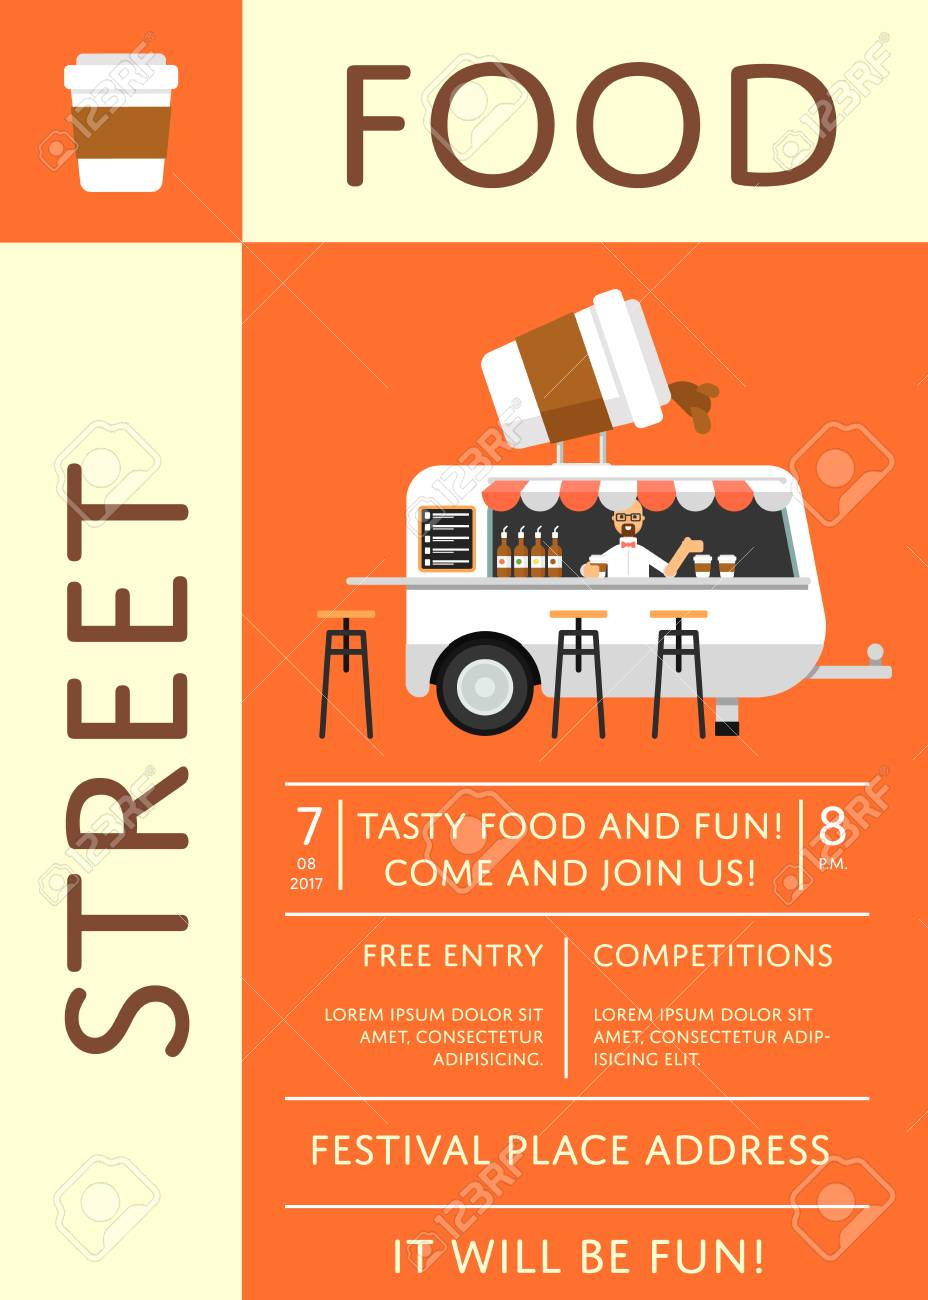 Street food festival invitation in flat style culinary city street food festival invitation in flat style culinary city event brochure template with fast food stopboris Images